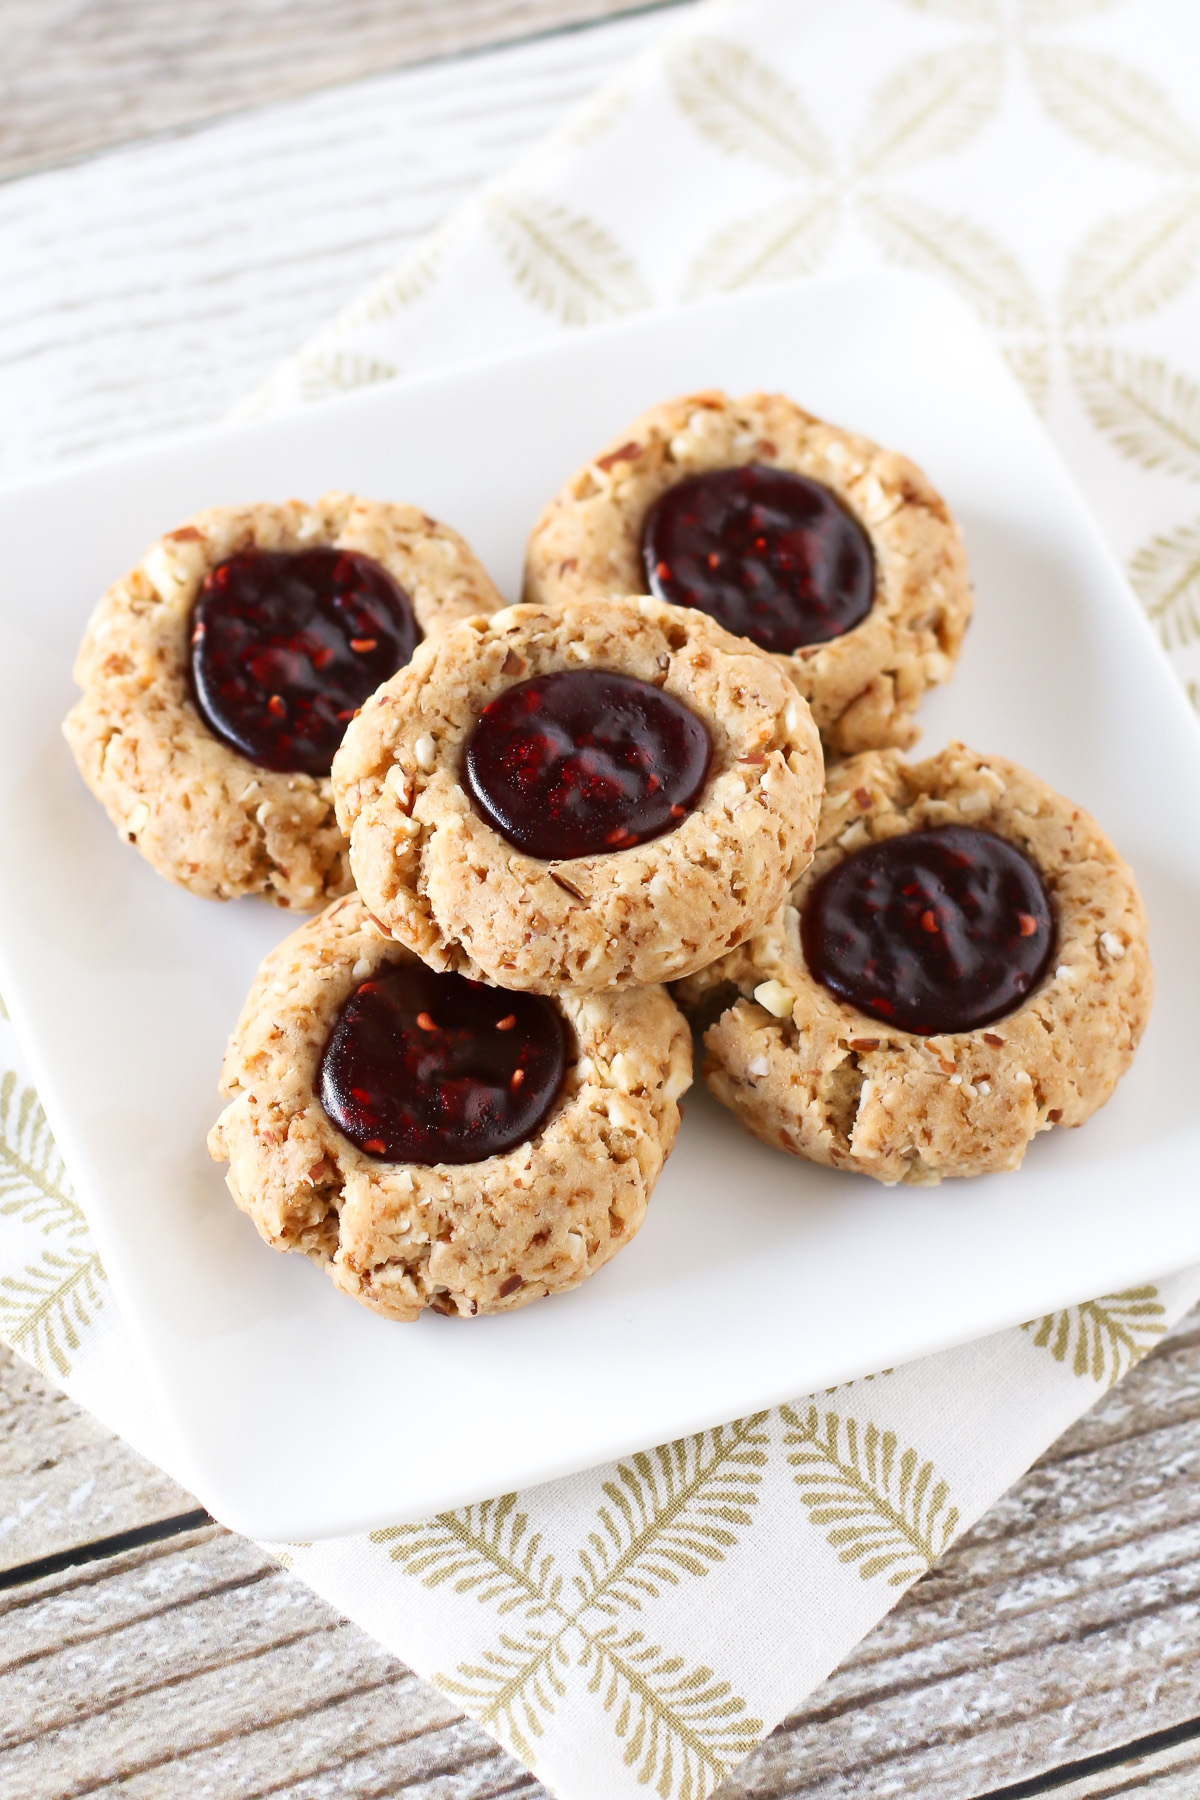 Gluten Free Vegan Raspberry Thumbprint Cookies. Tender almond cookies with a raspberry jam filling. A holiday classic!